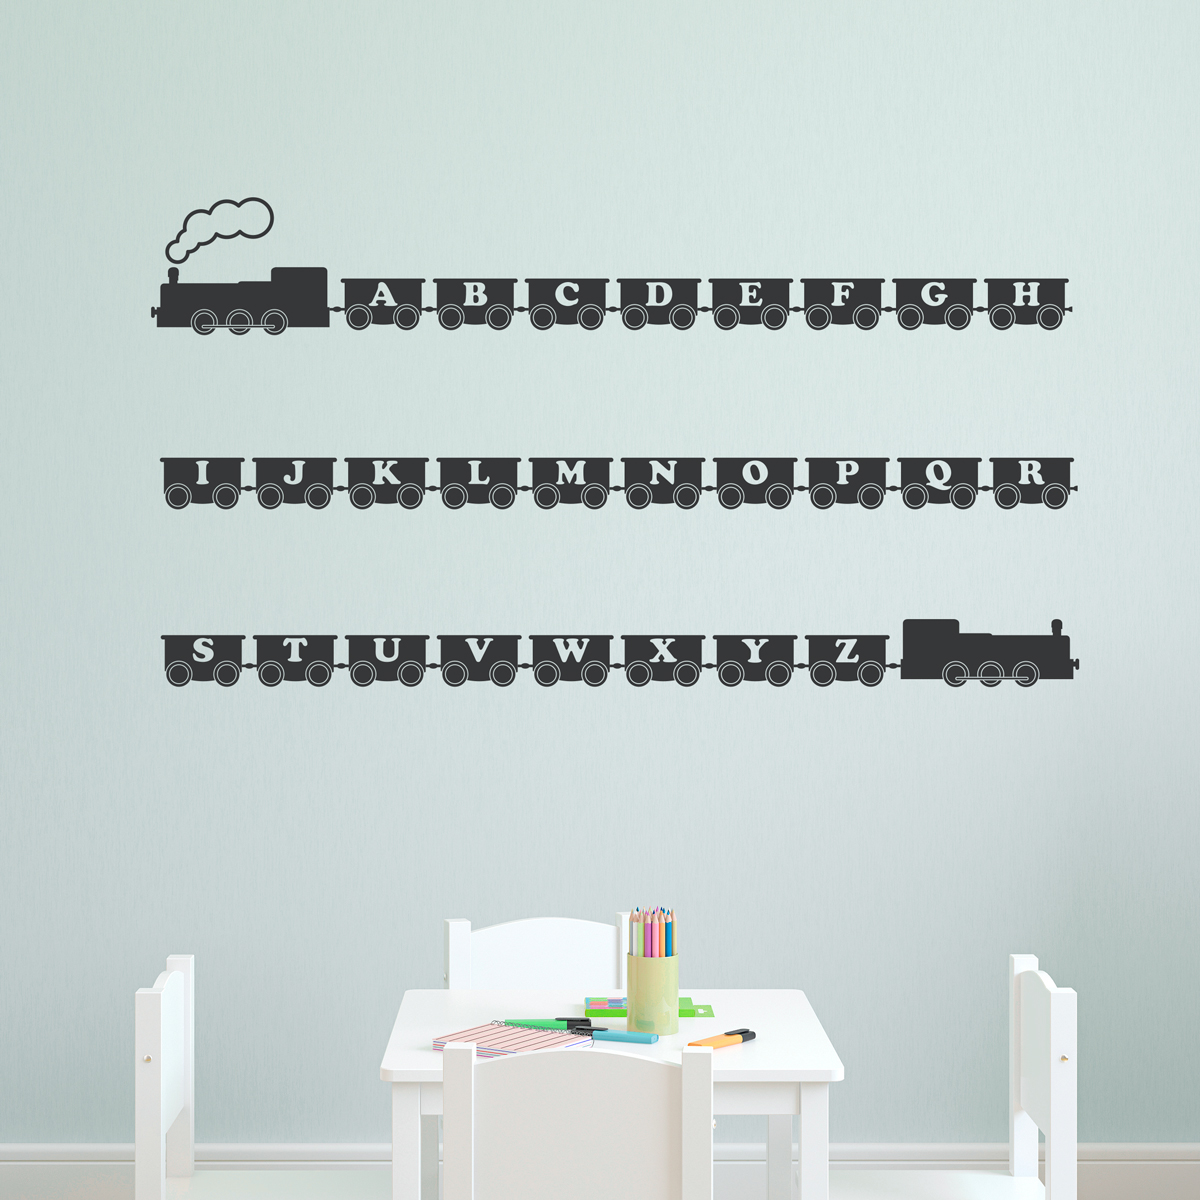 & Alphabet Train Wall Decal